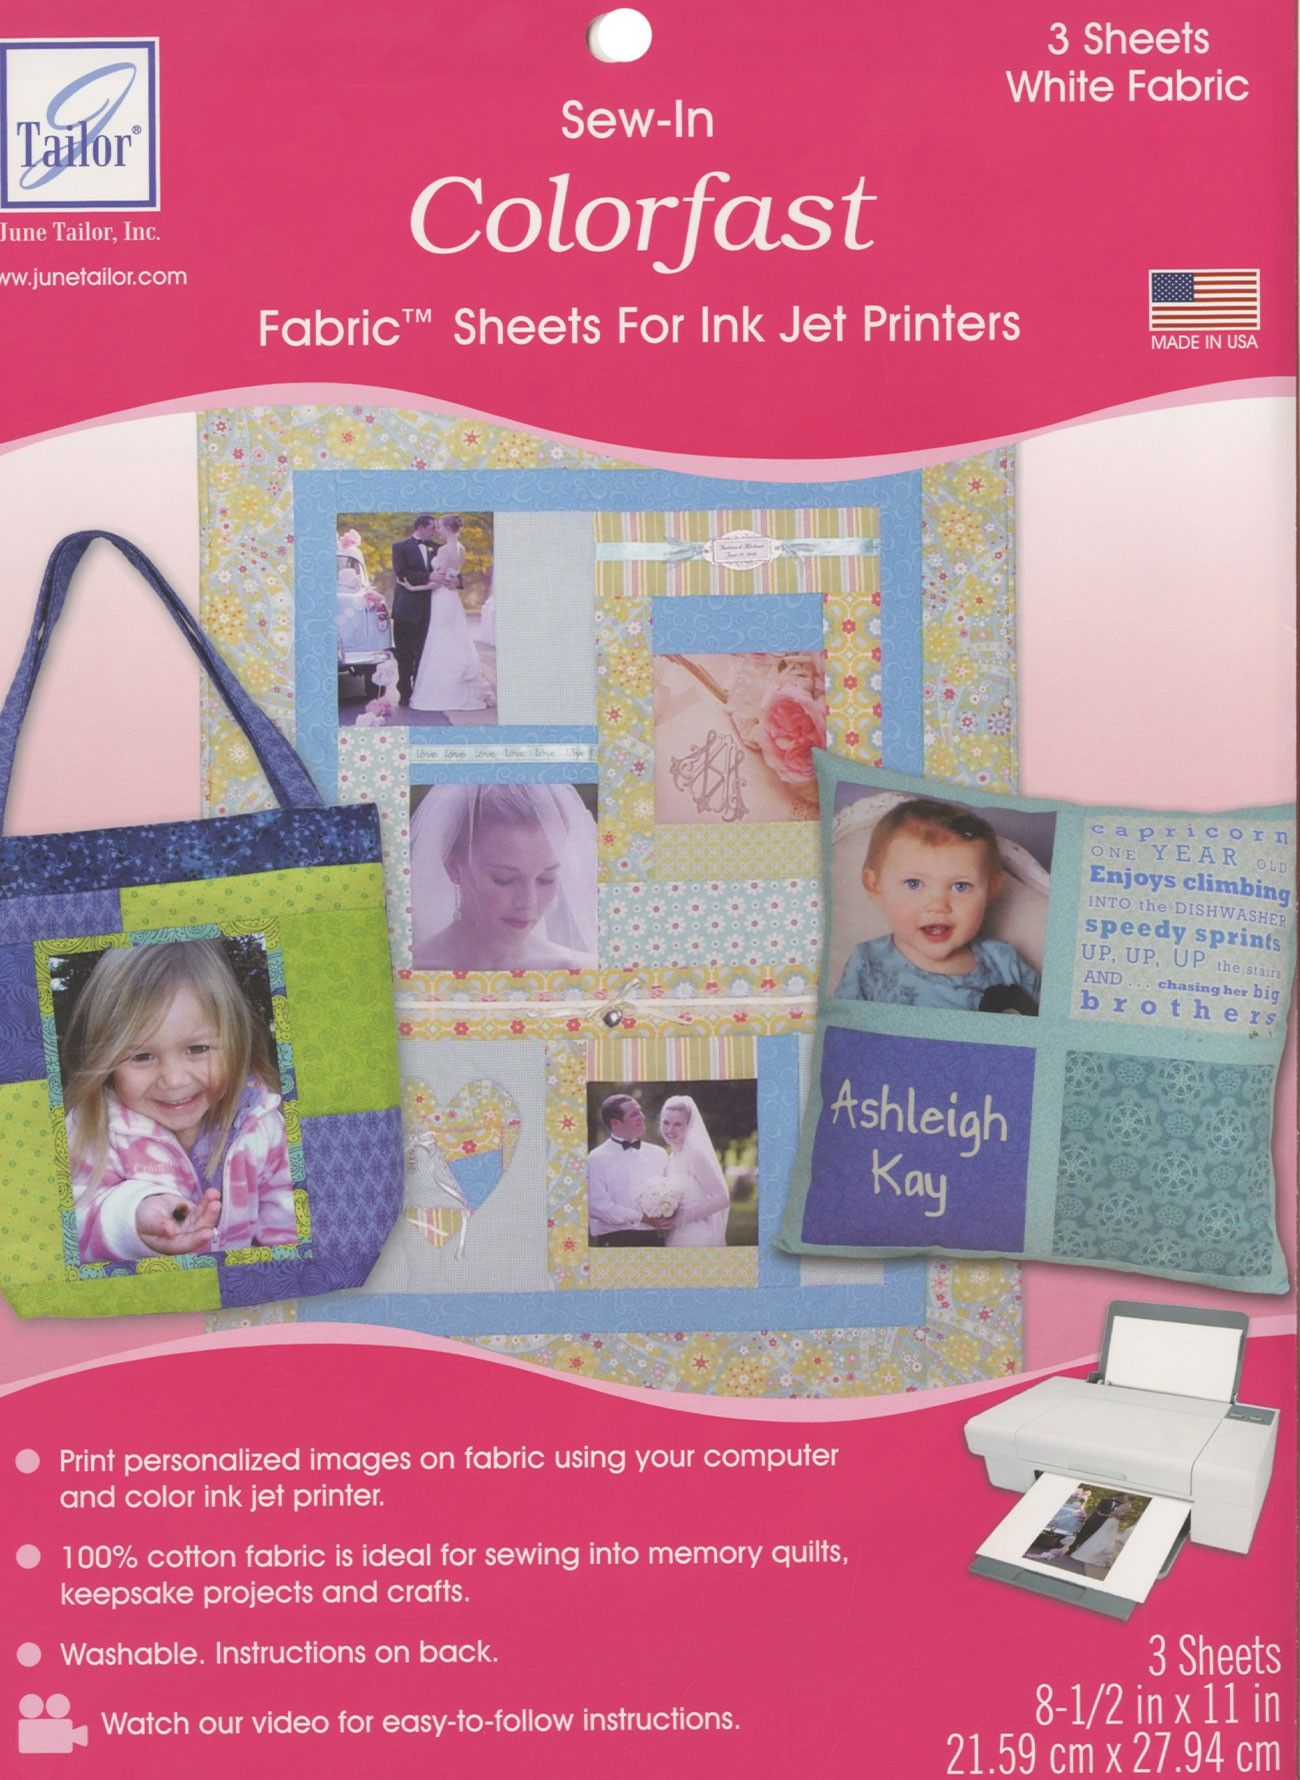 June Tailor Sew-In Colorfast Fabric Sheets for Inkjet Printers